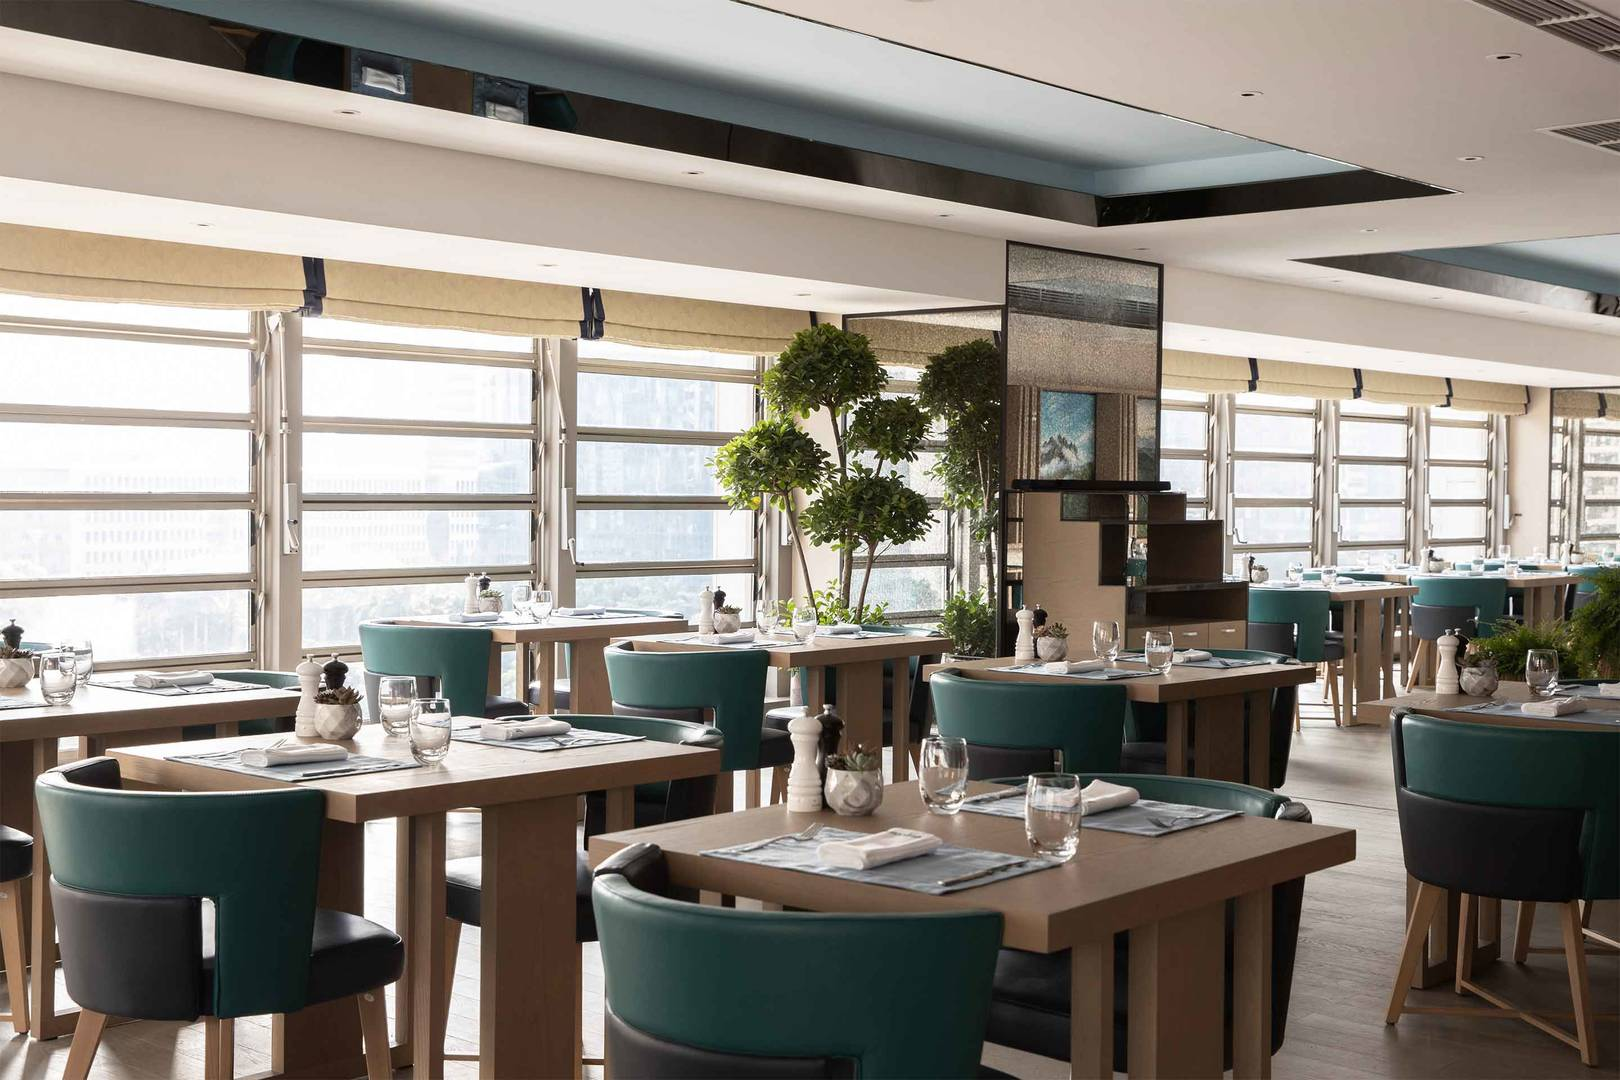 6-4 Hero - JUMEIRAH LIVING GUANGZHOU - TING RESTAURANT AND LOUNGE